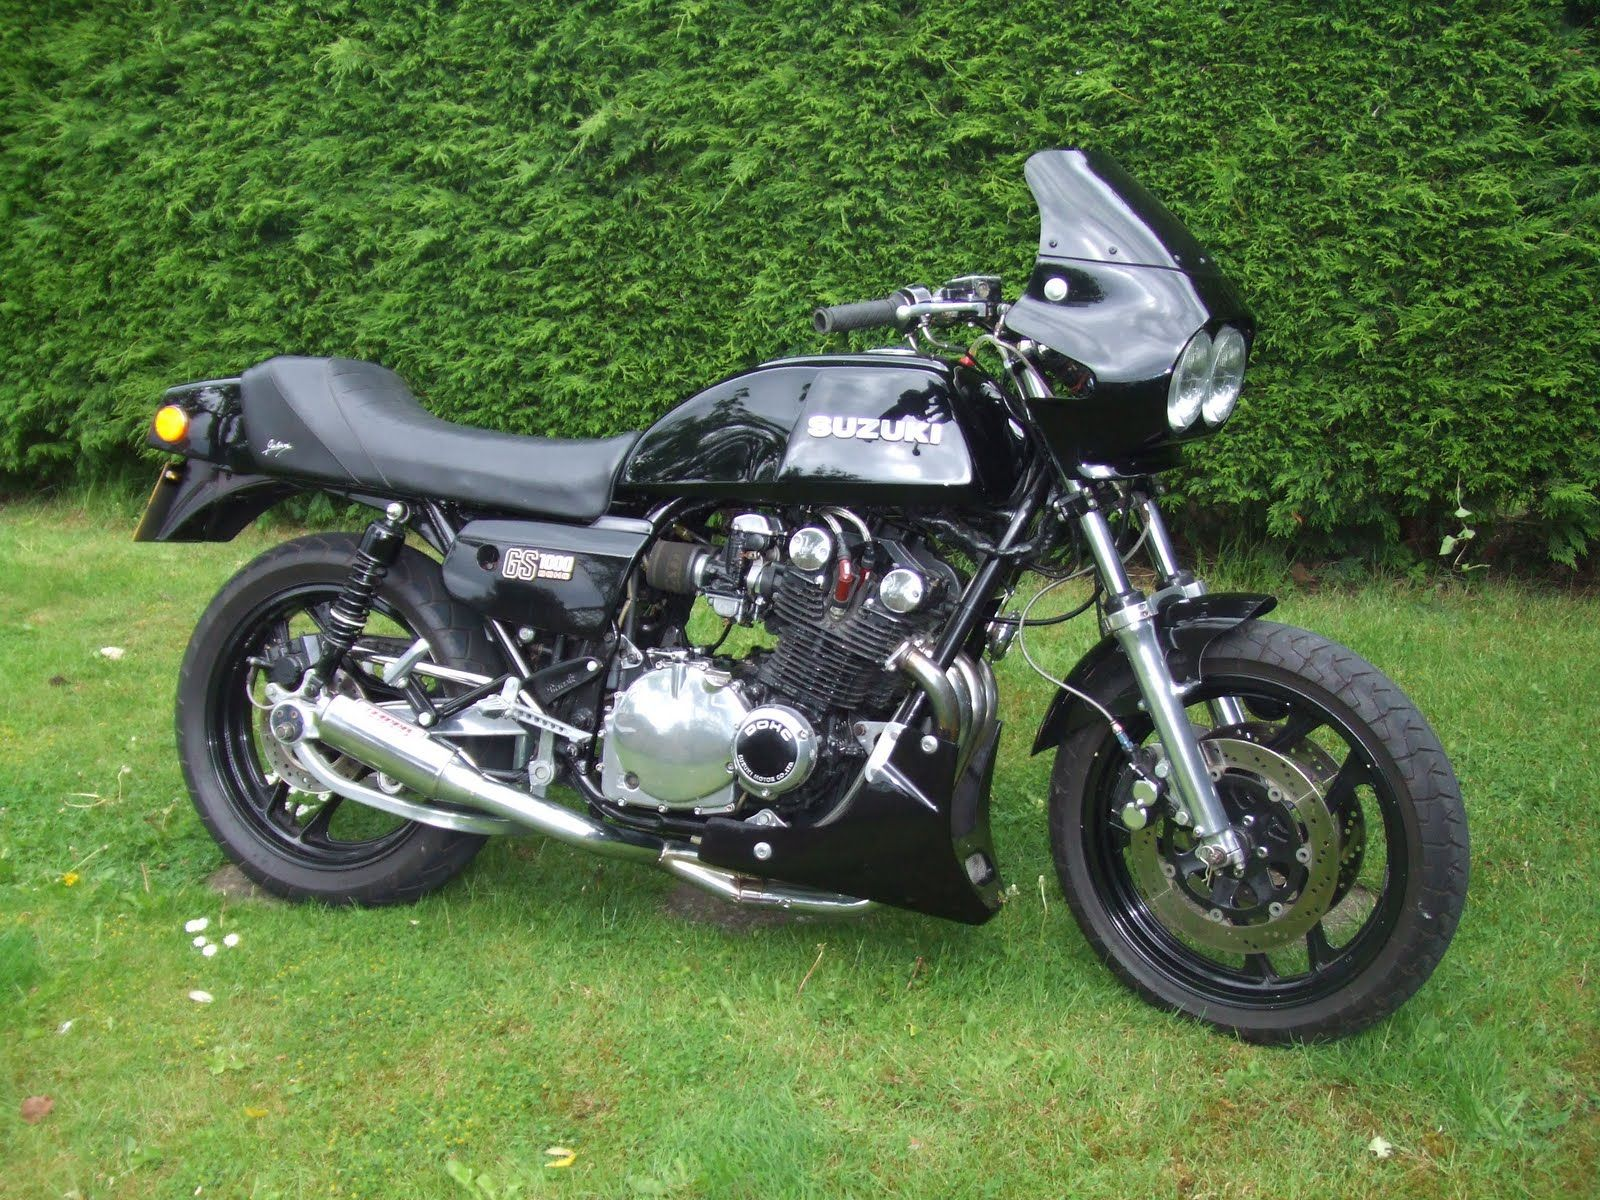 gs1000 streetfighter. Front and rear swap | Suzuki GS1000 ...